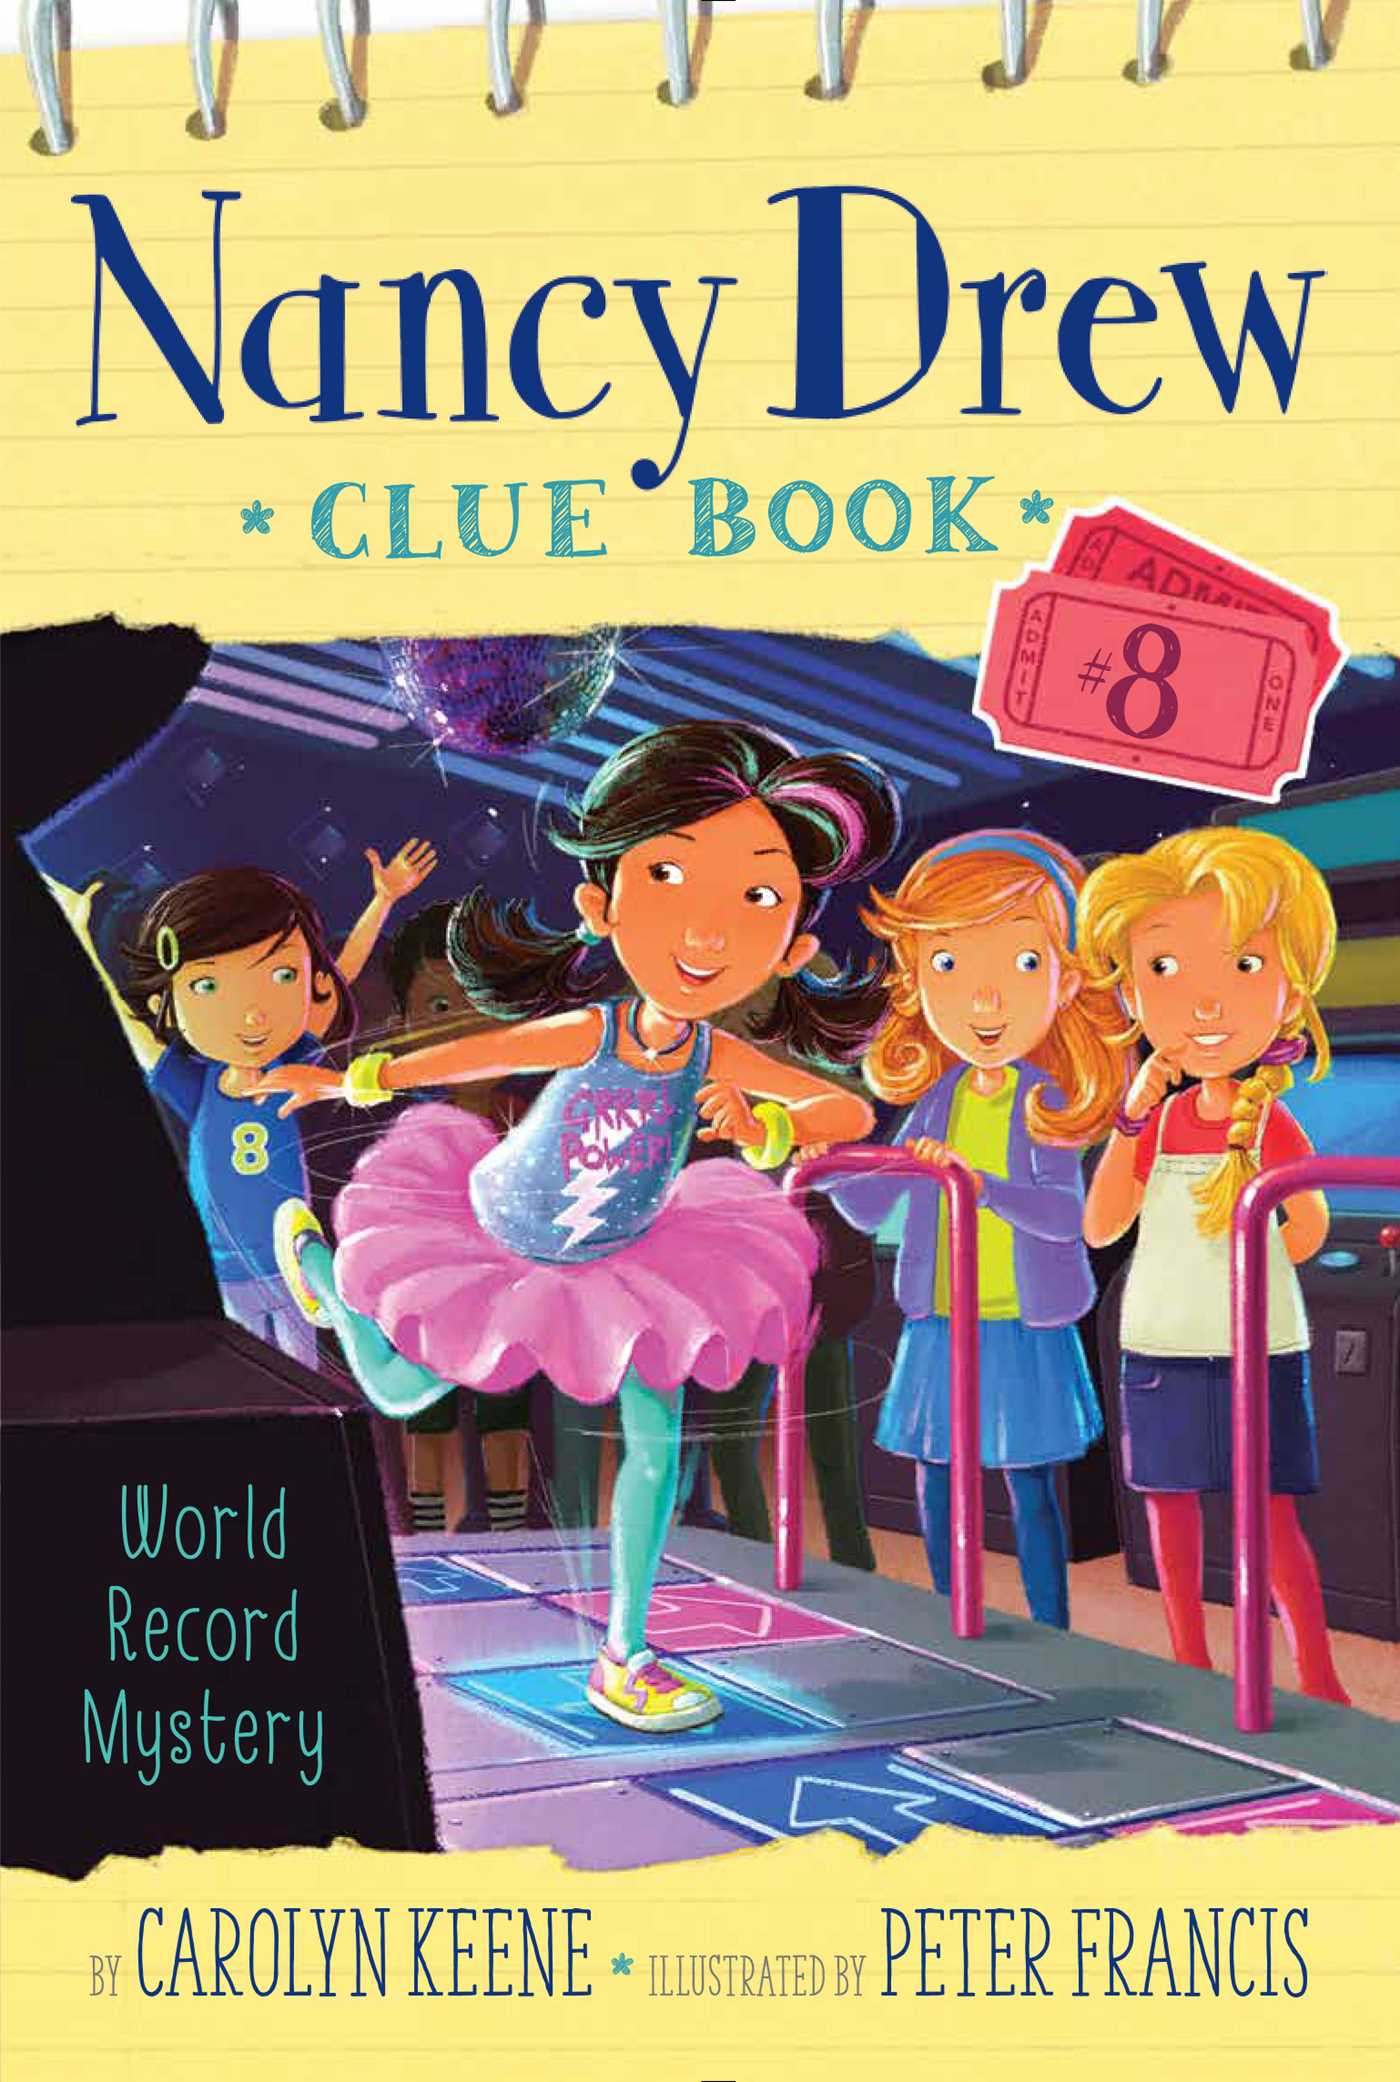 Nancy Drew Clue Book #8 World Record Mystery